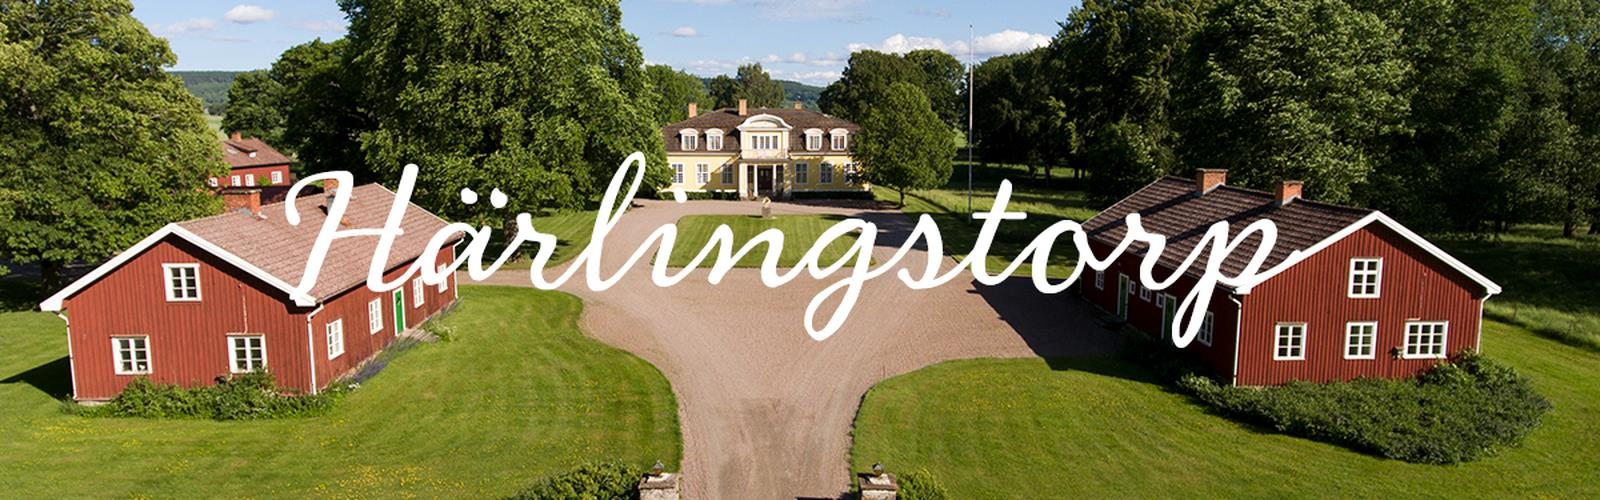 harlingstorp header